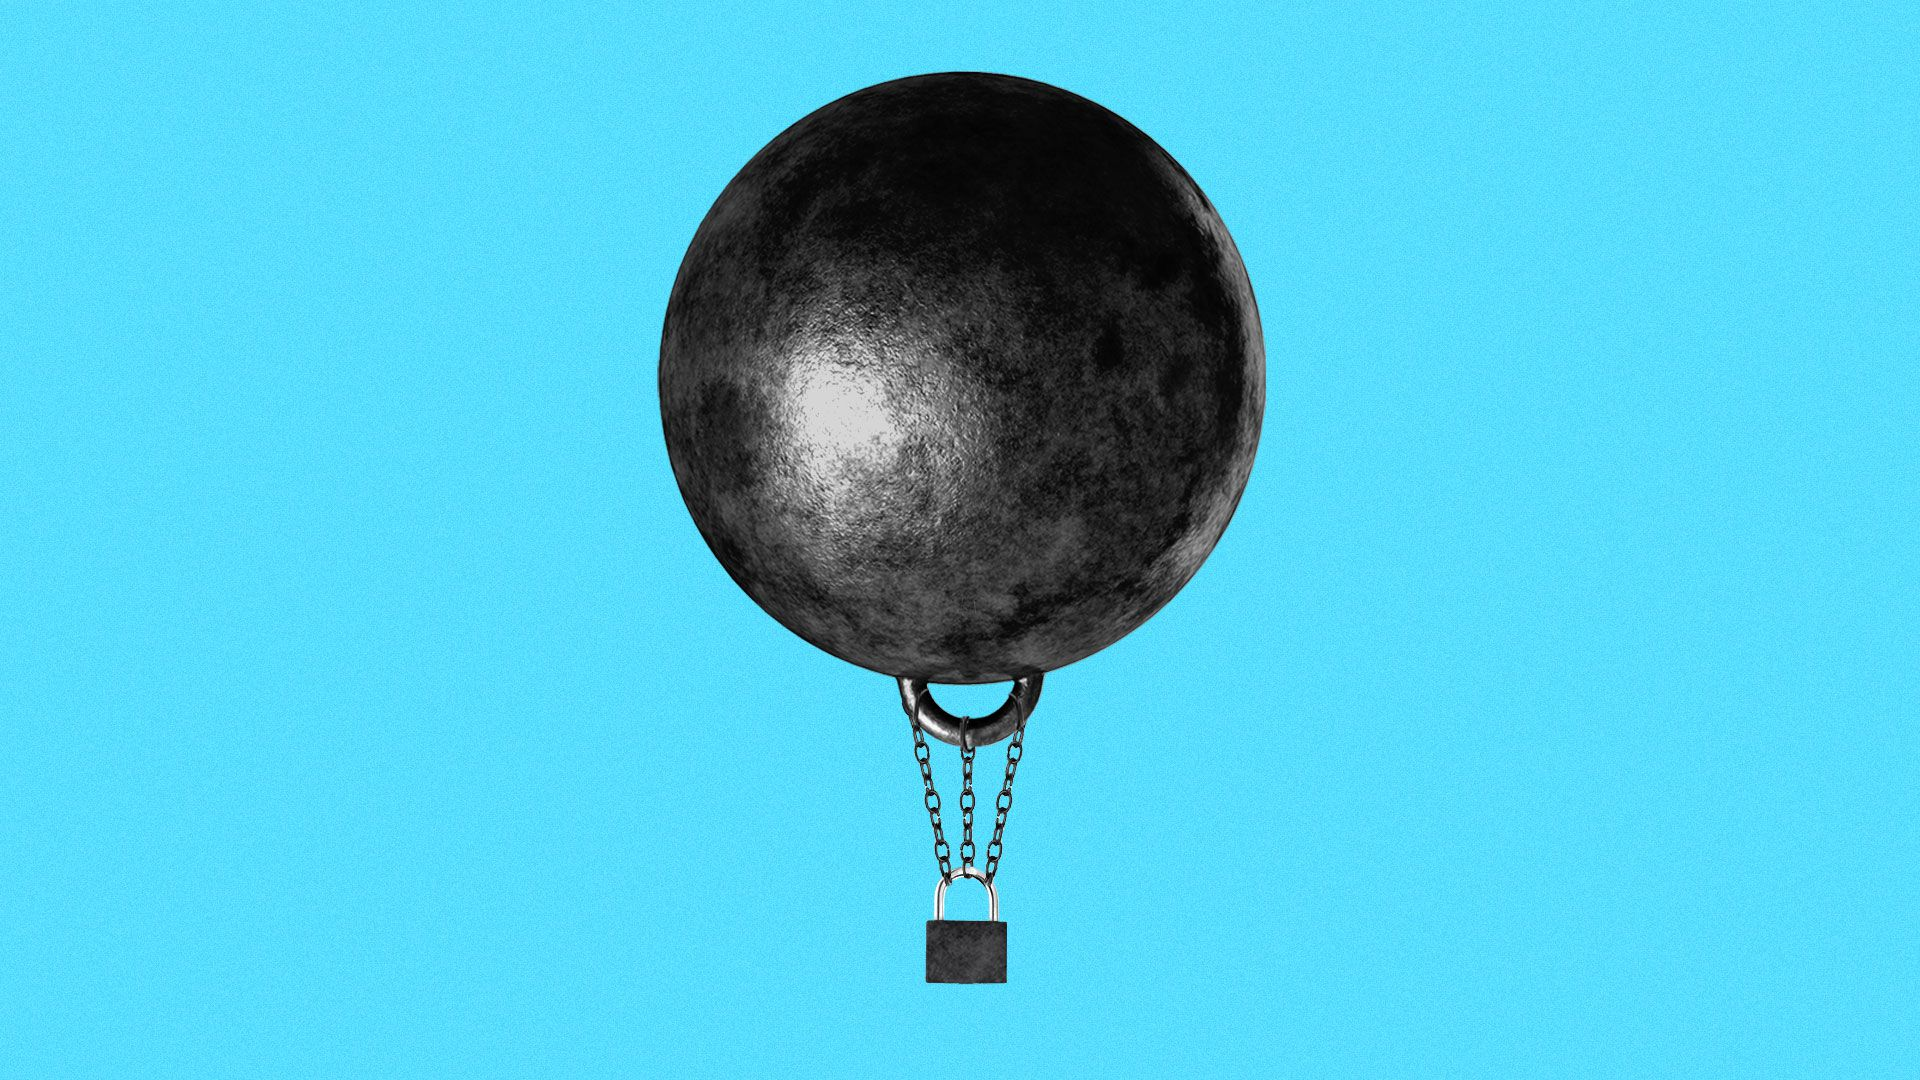 Illustration of a hot air balloon made out of a ball and chain and a padlock.